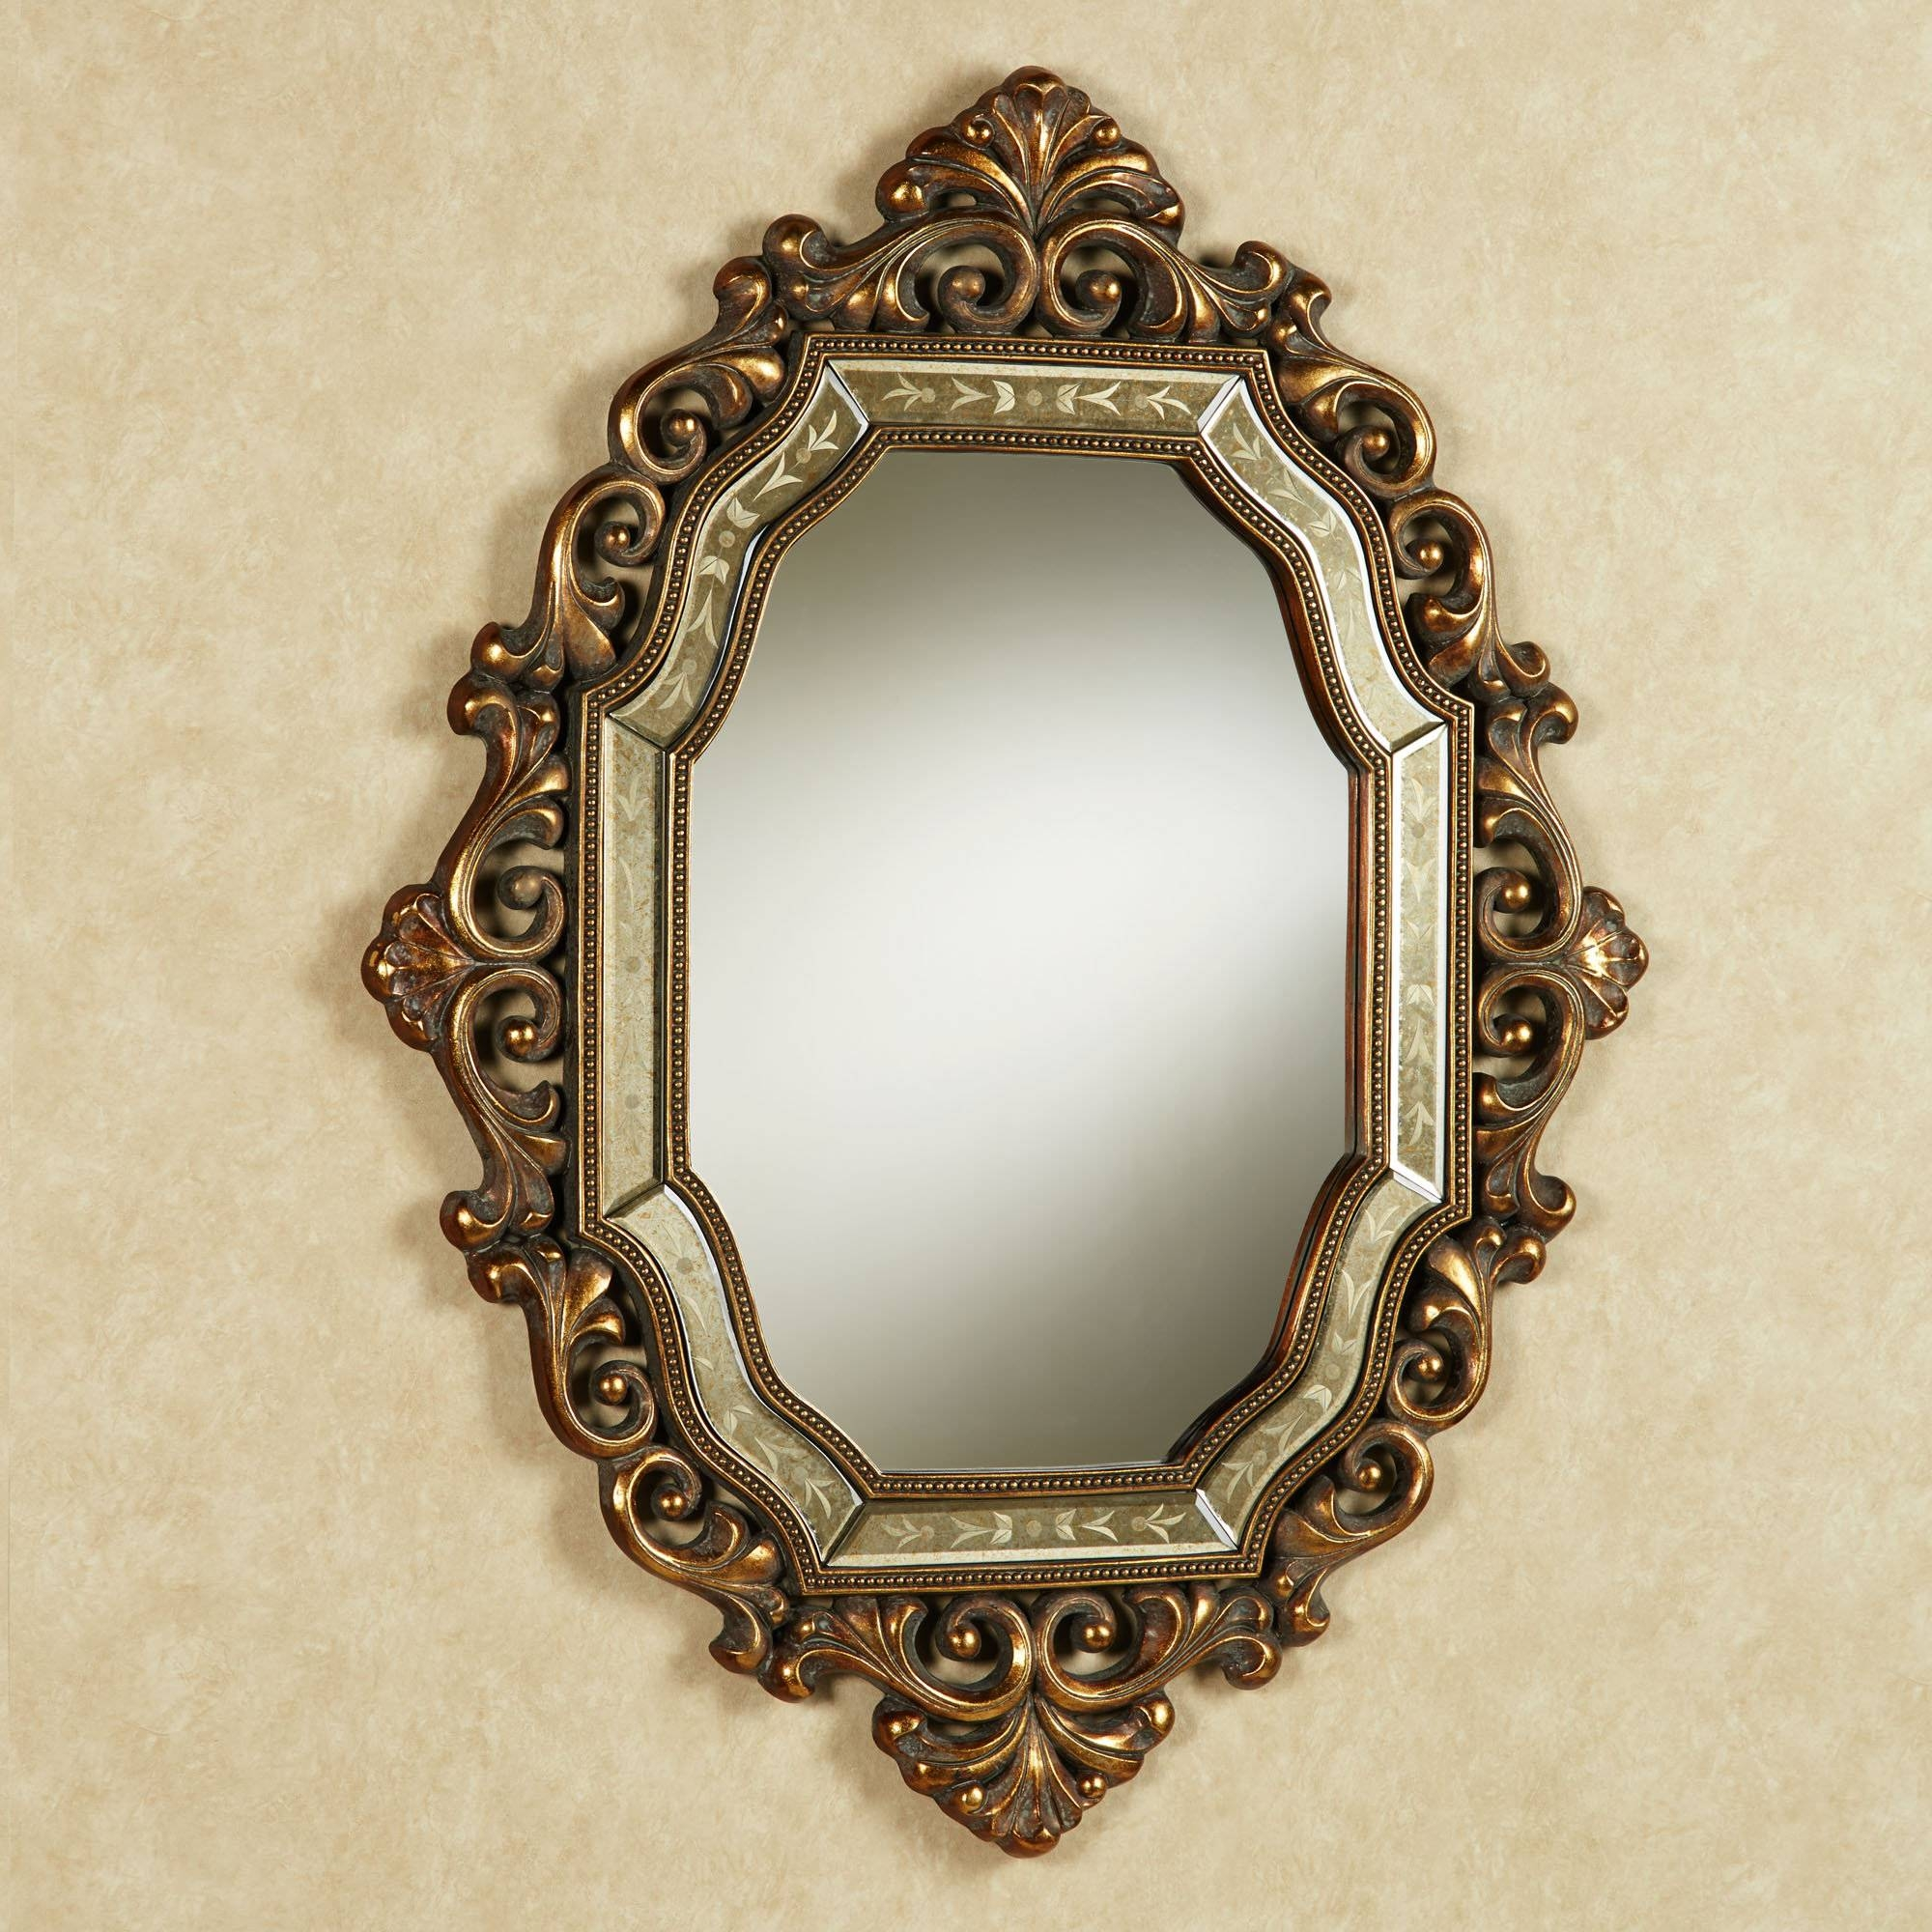 Home Decor: Use Antique Style Mirrors In Wall Decoration Of Your with regard to Old Style Mirrors (Image 20 of 25)